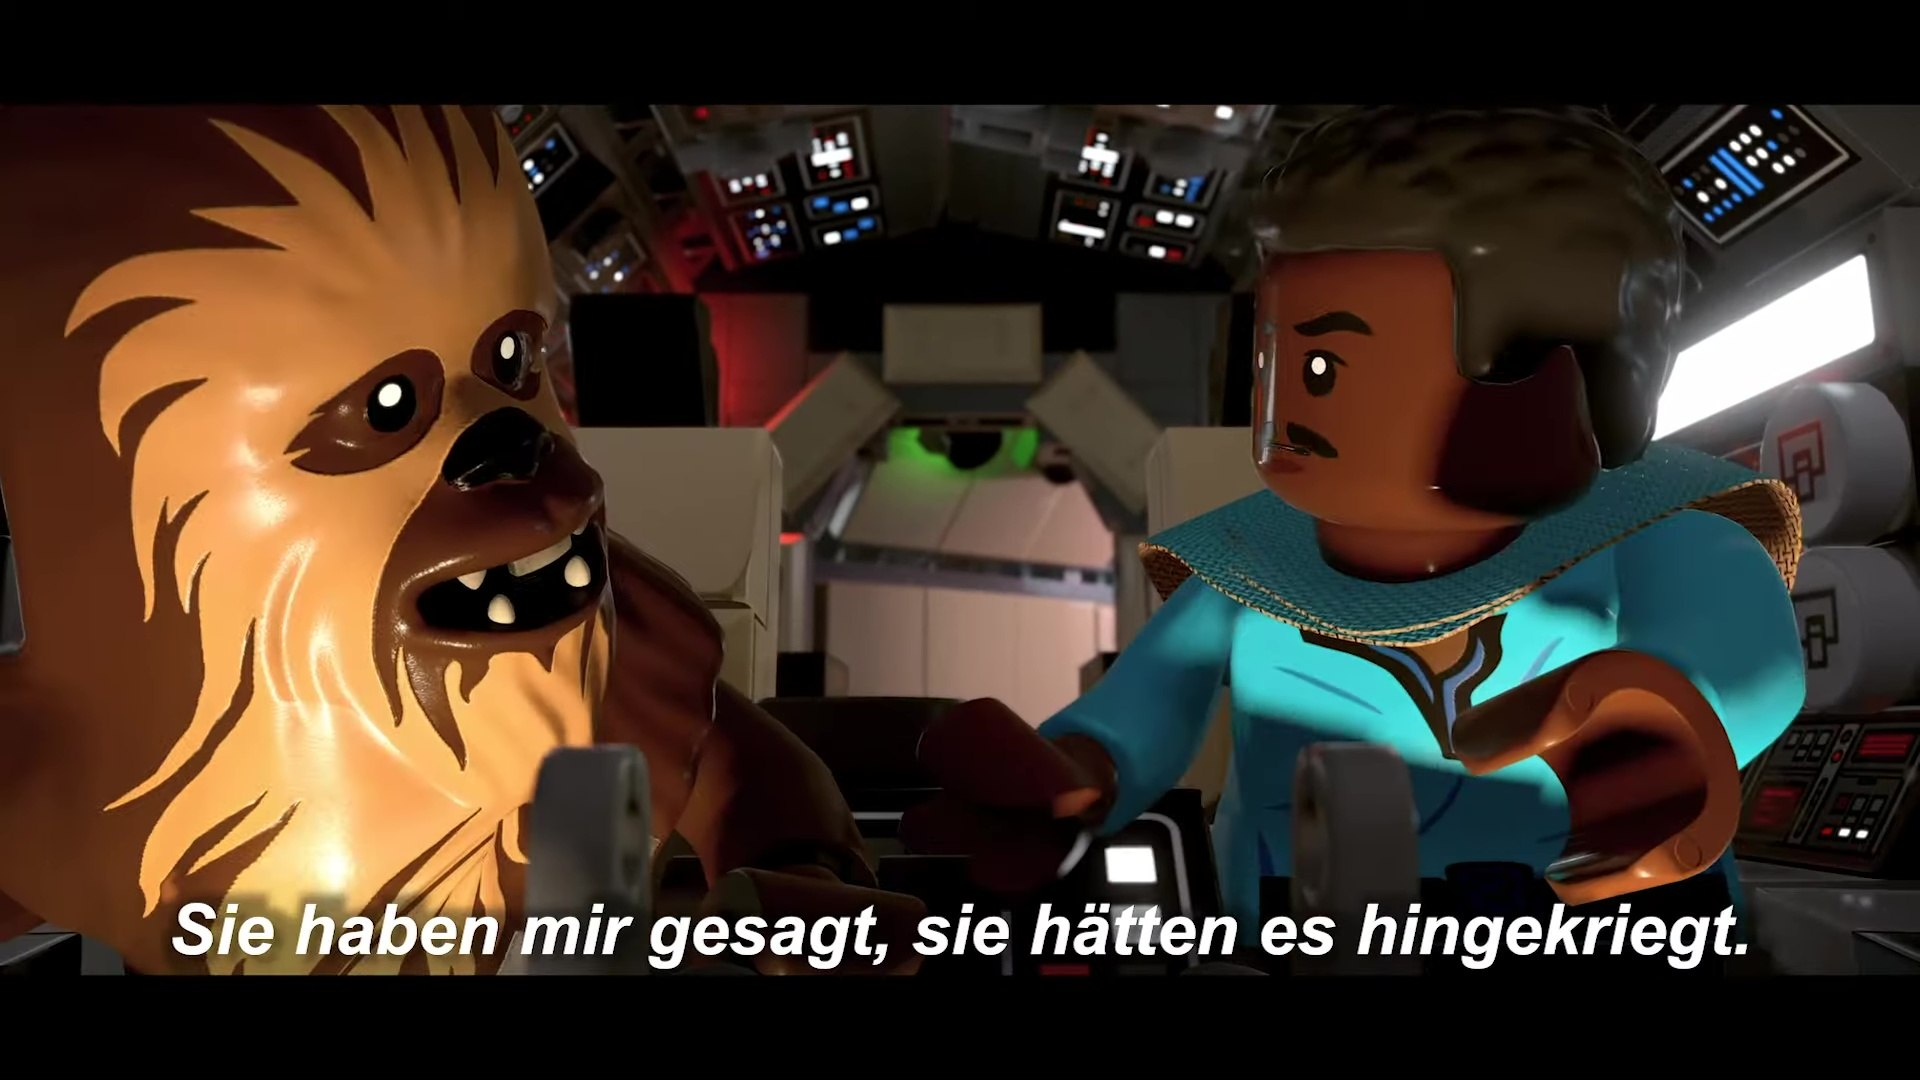 Lego Star Wars The Skywalker Saga Official Sizzle Trailer 2020 Video Dailymotion